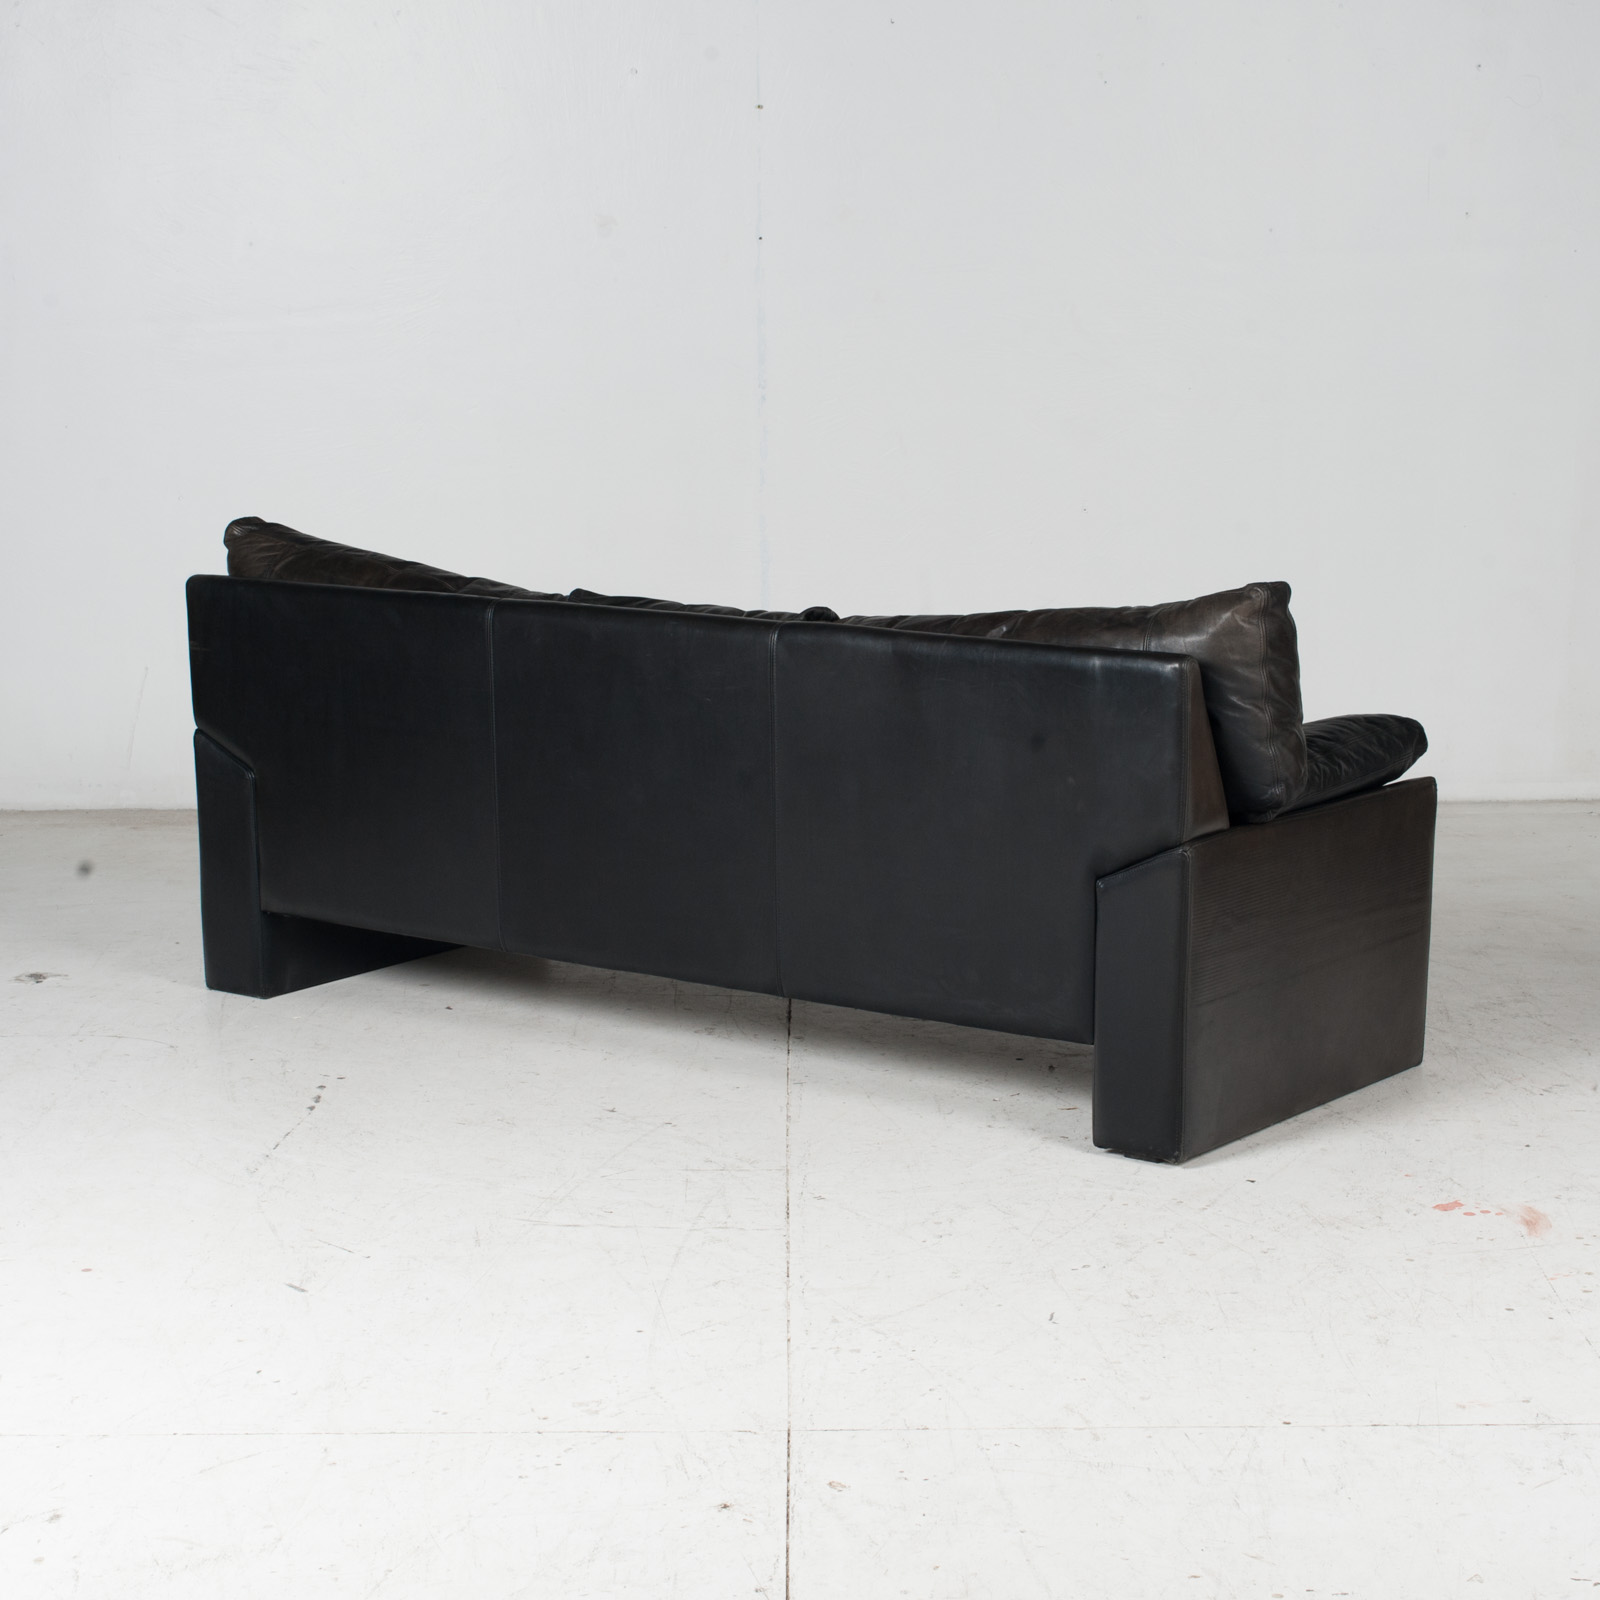 3 Seat Sofa By Stouby In Black Leather, 1960s, Denmark 8